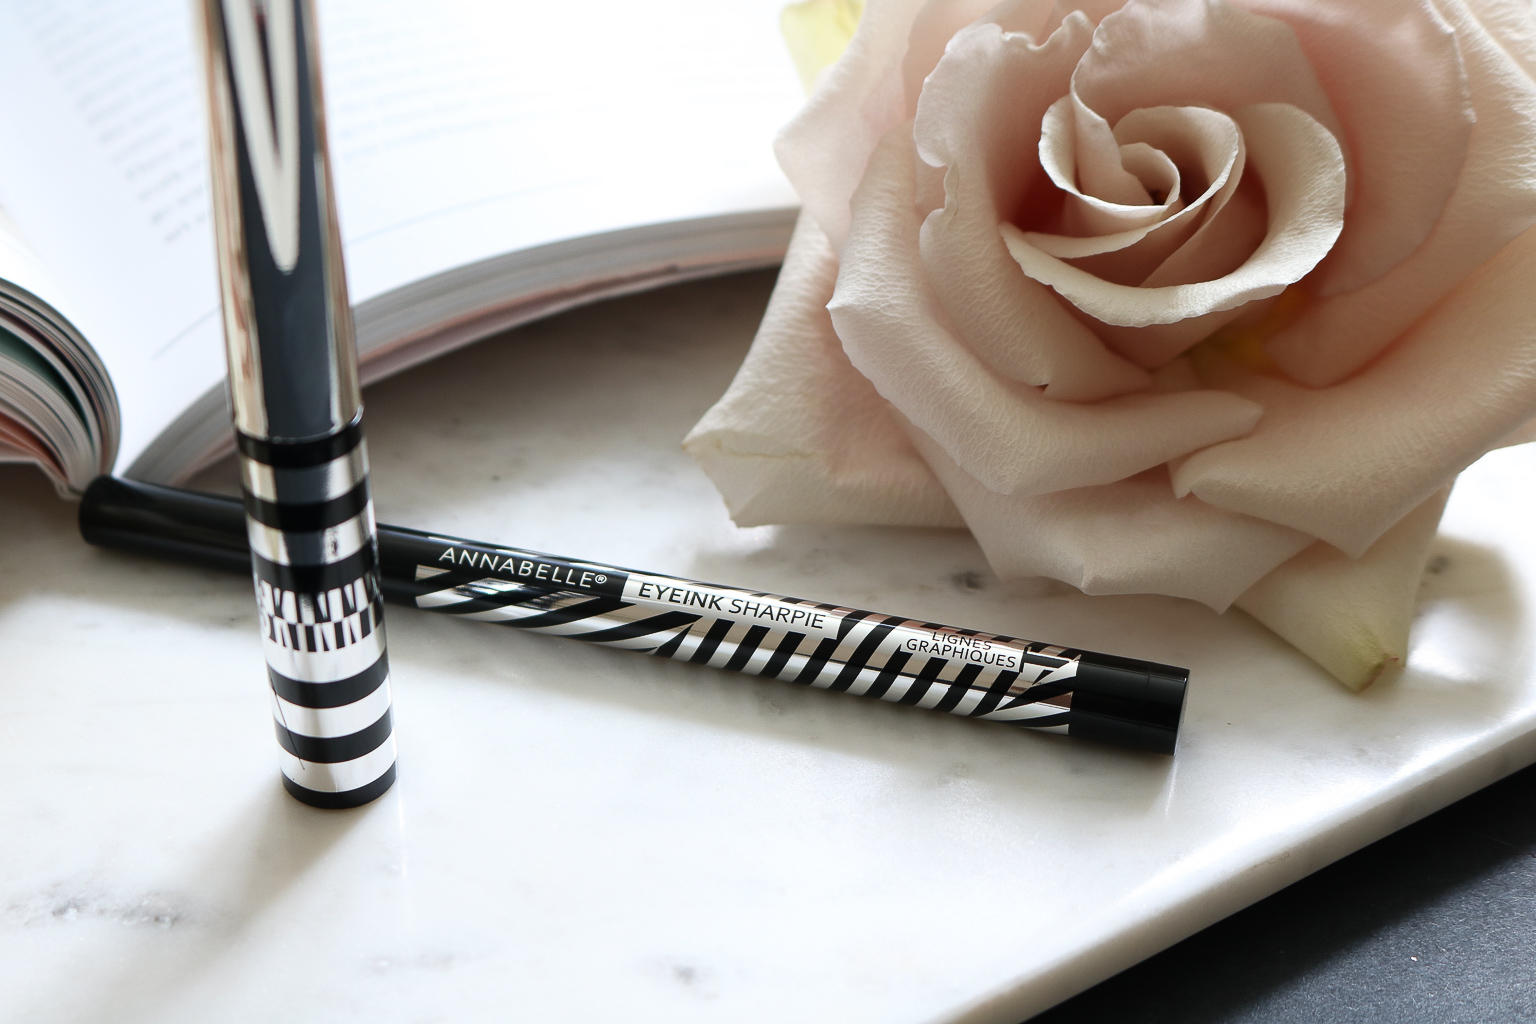 You have to check out Annabelle's new collection of eyeliners - NeoChic!